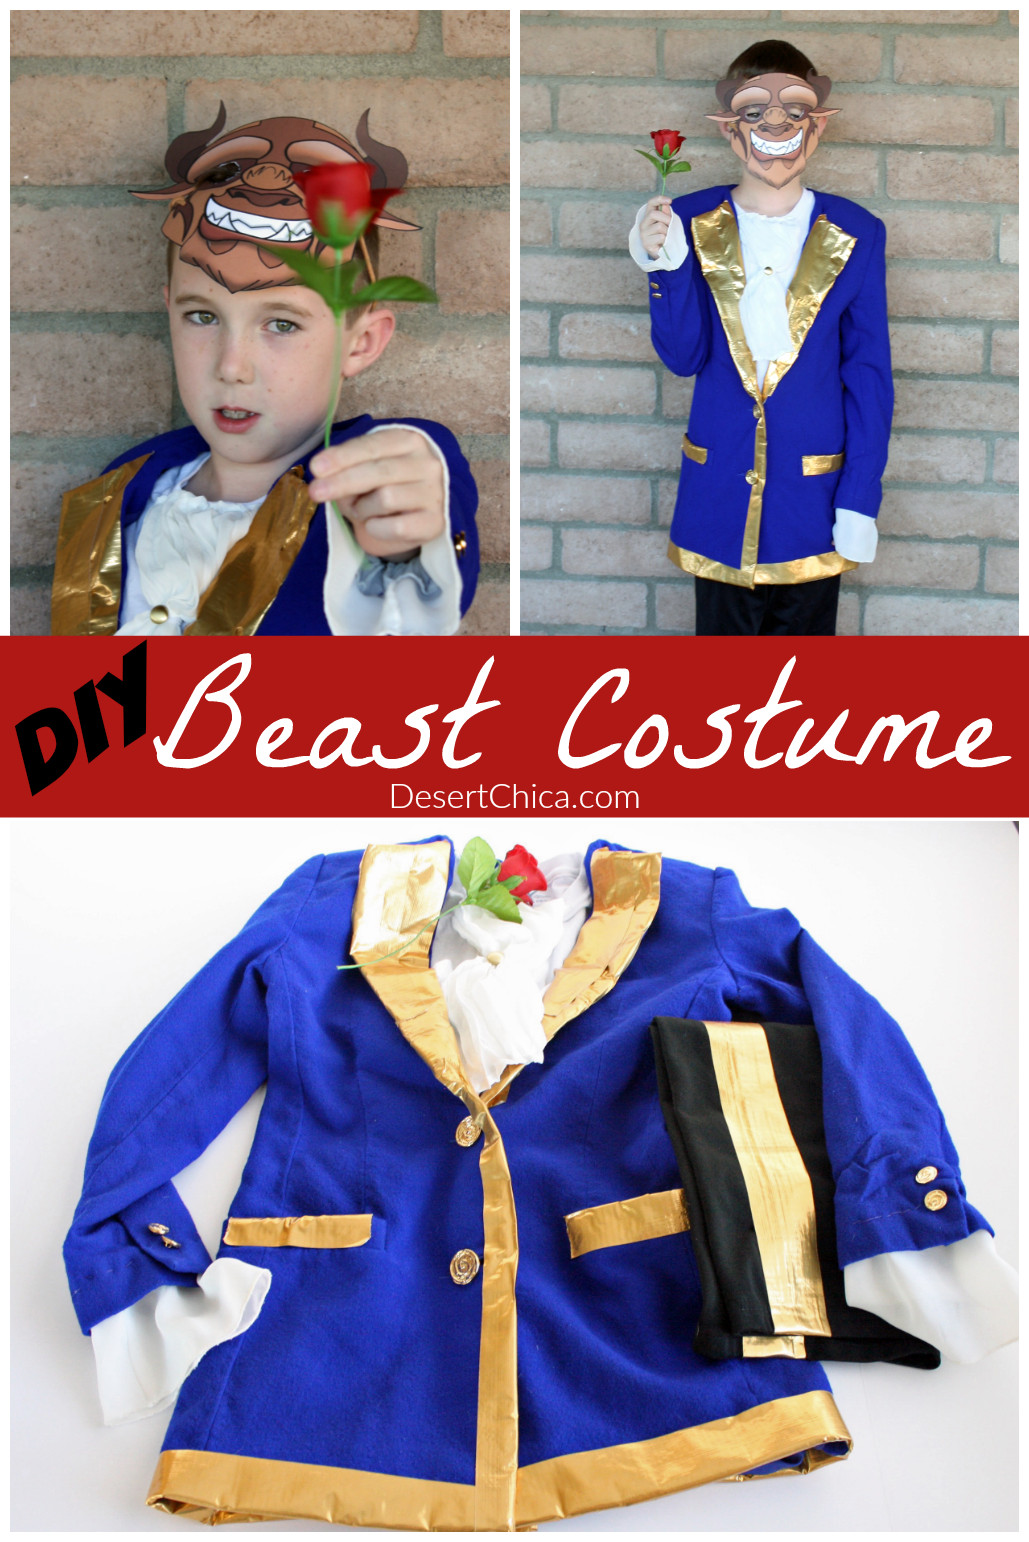 Best ideas about DIY Beauty And The Beast Costume . Save or Pin DIY Beast Costume Now.